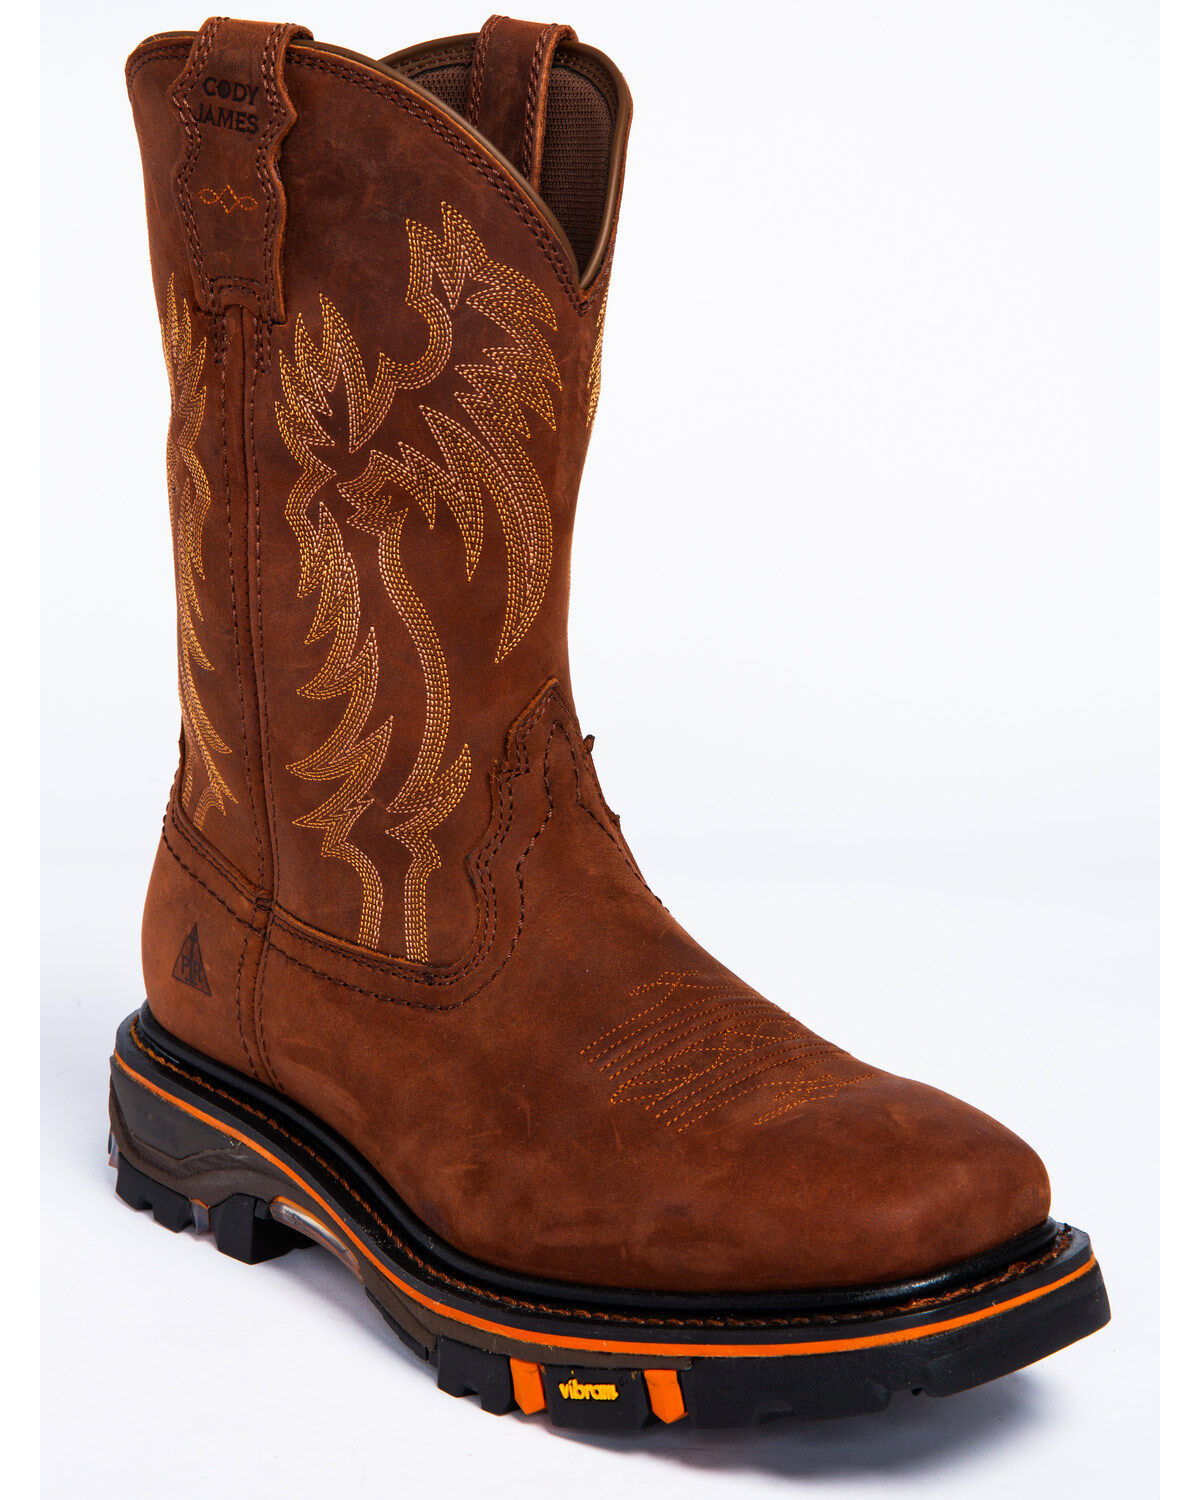 Pull-On Work Boots - Boot Barn